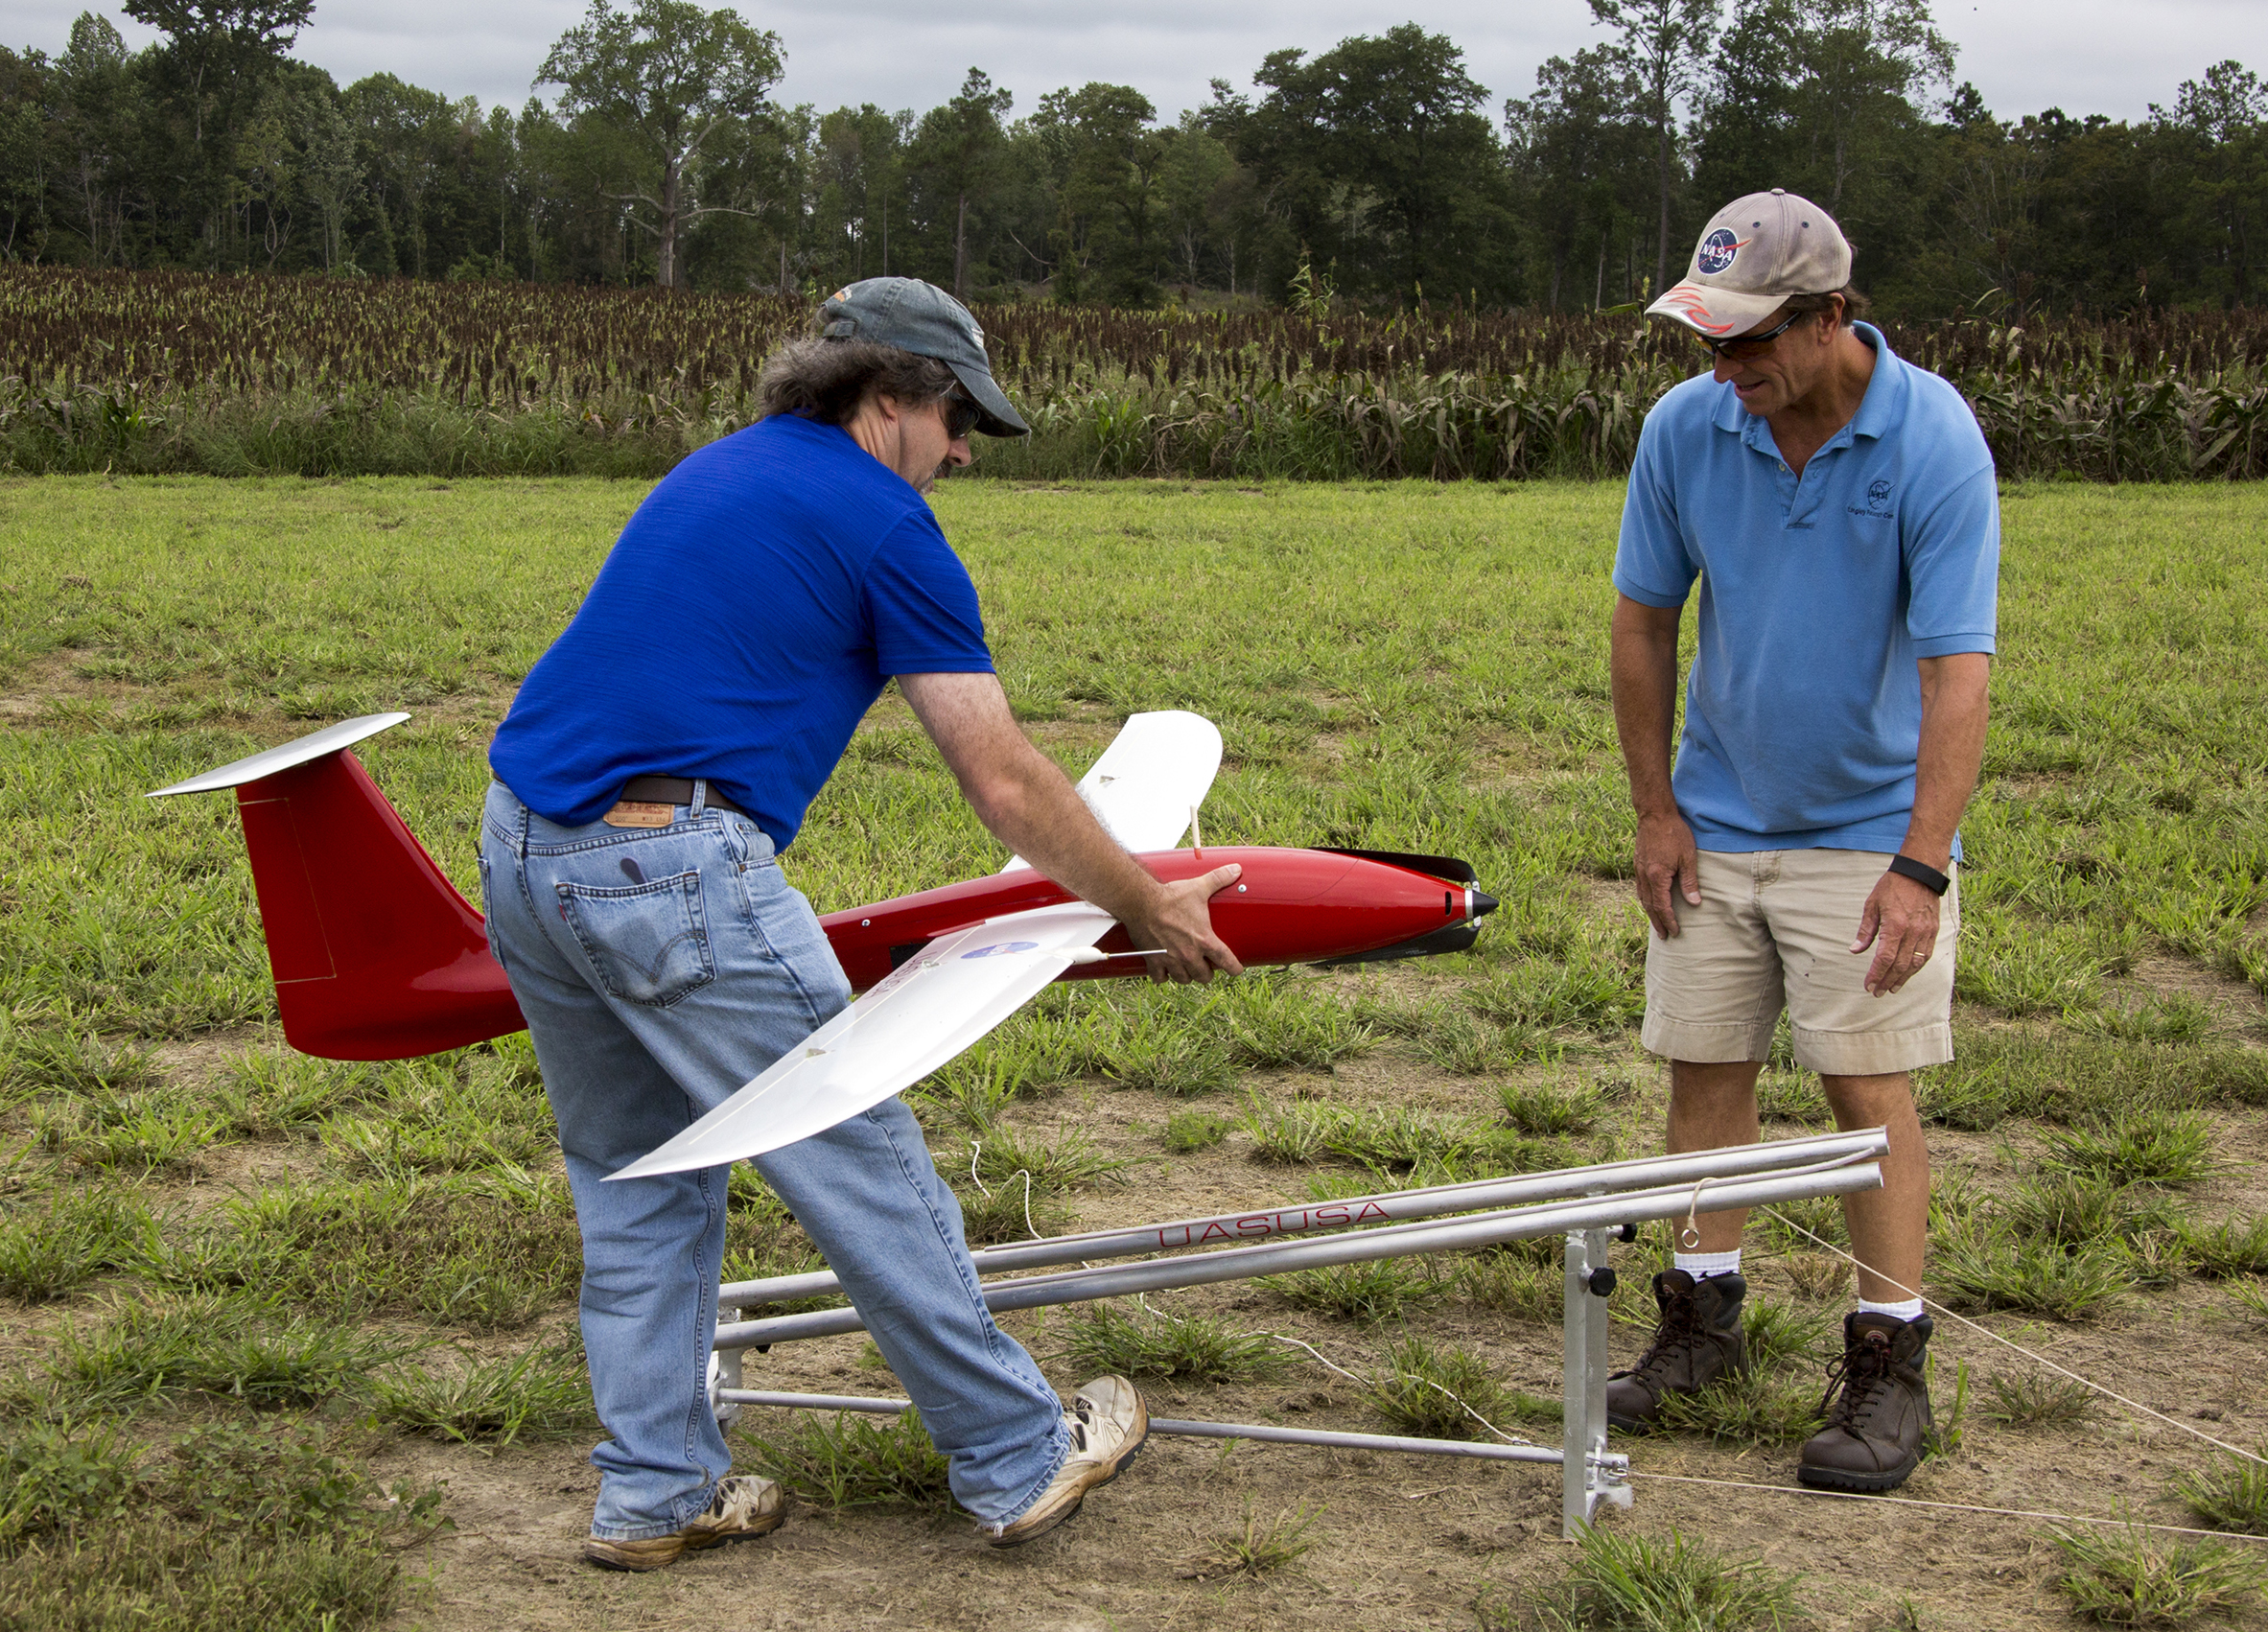 engine drone with Nasa Langley To Participate In Drone Air Traffic Management Test on Falcon 9 Launch Landing Success With Bulgariasat as well Fire Shadow Loitering Munition as well Jumping A Carli Cummins On The Baja also Watch in addition Inscription Debris Triangle.